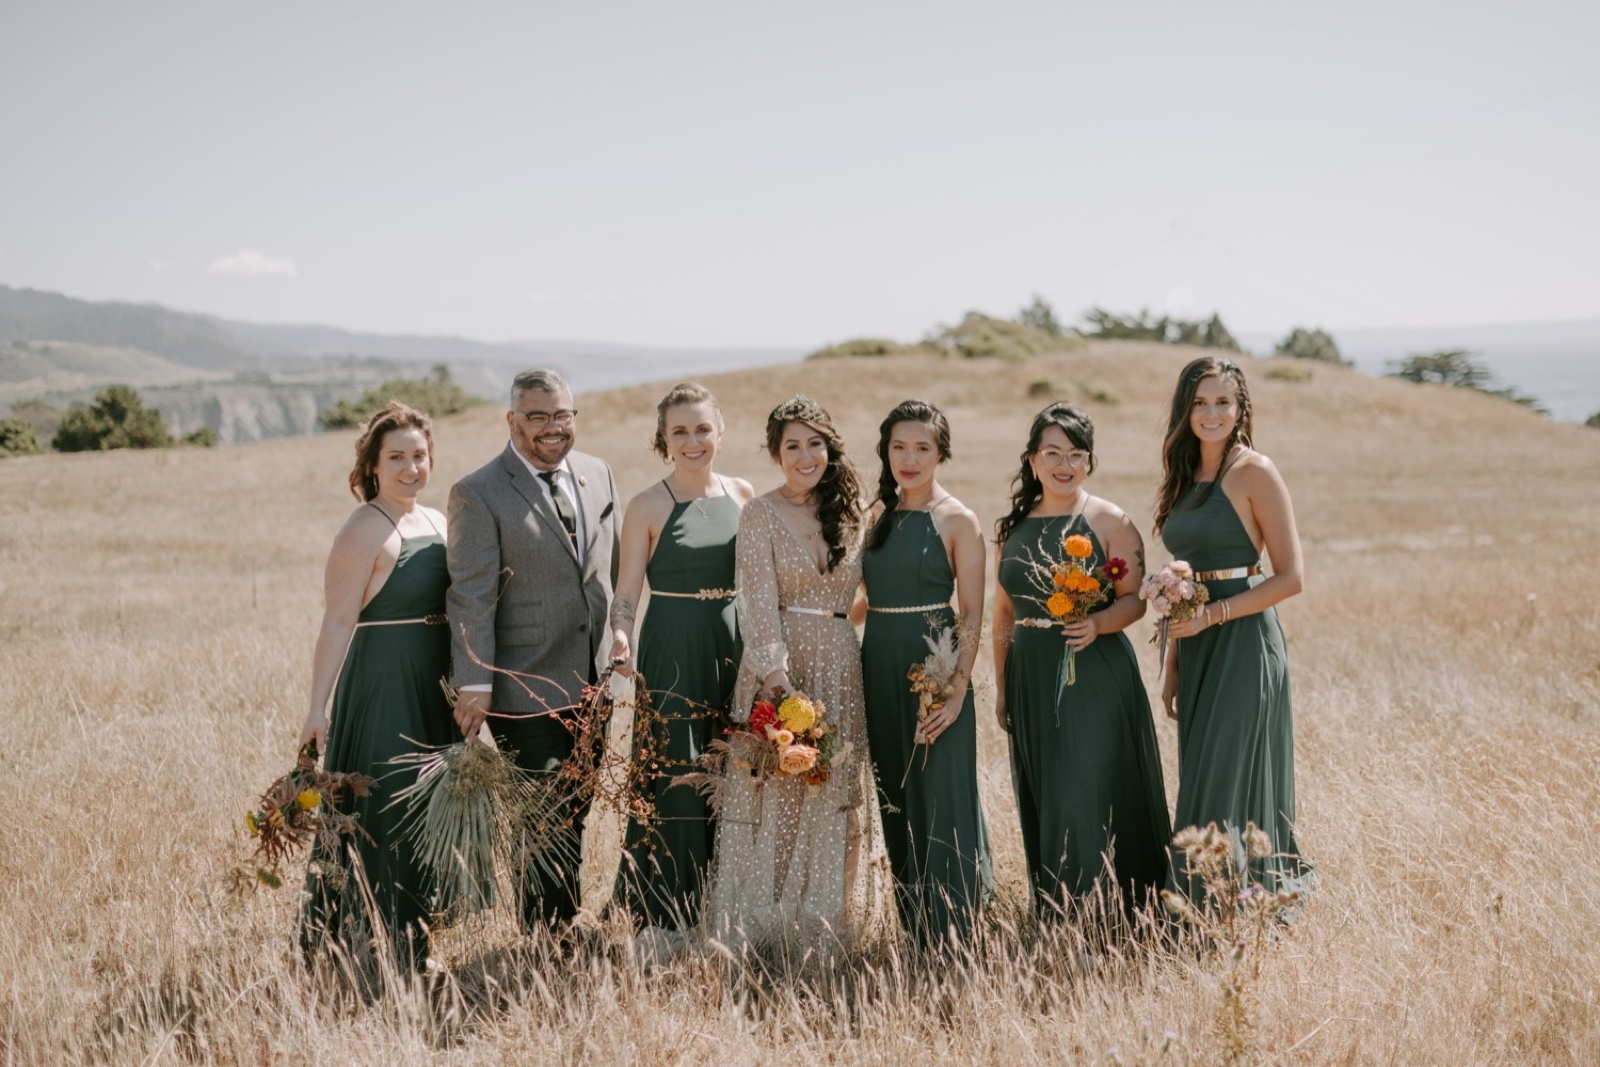 Mendocino_Wedding_Cuffeys_Cove053.JPG